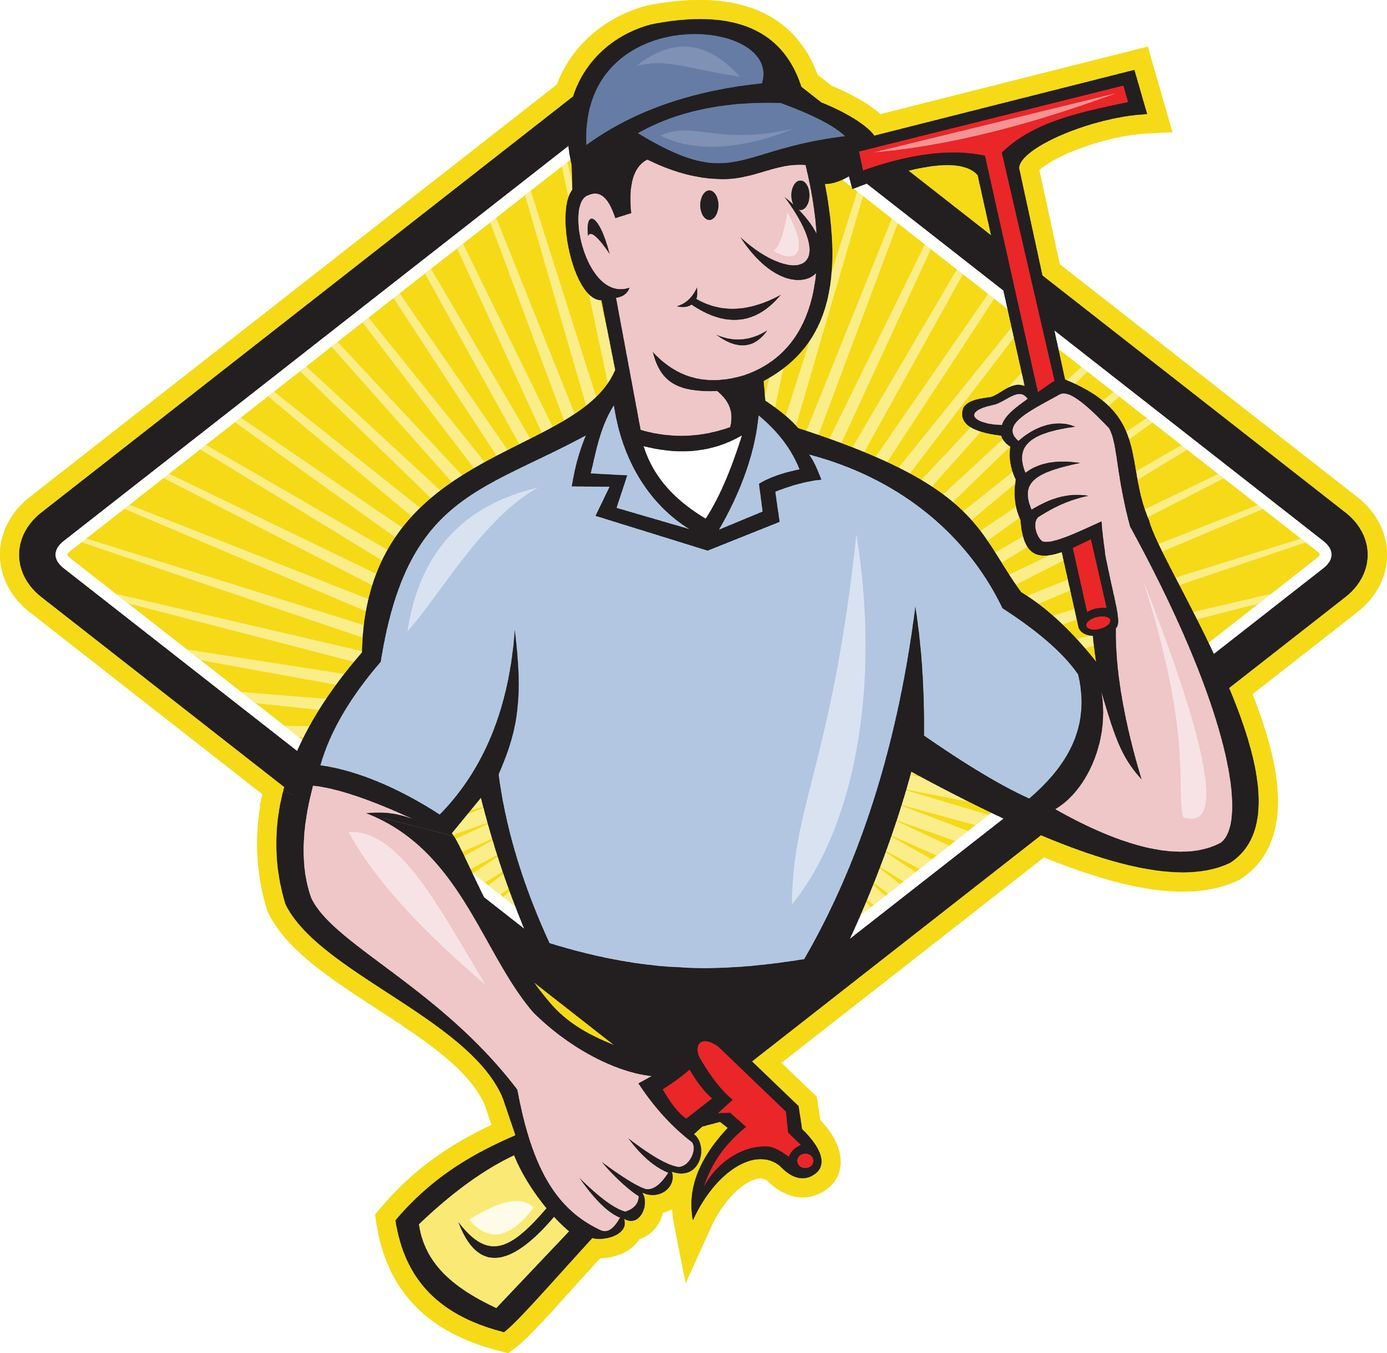 Cleaning Service Clip Art - Cliparts.co